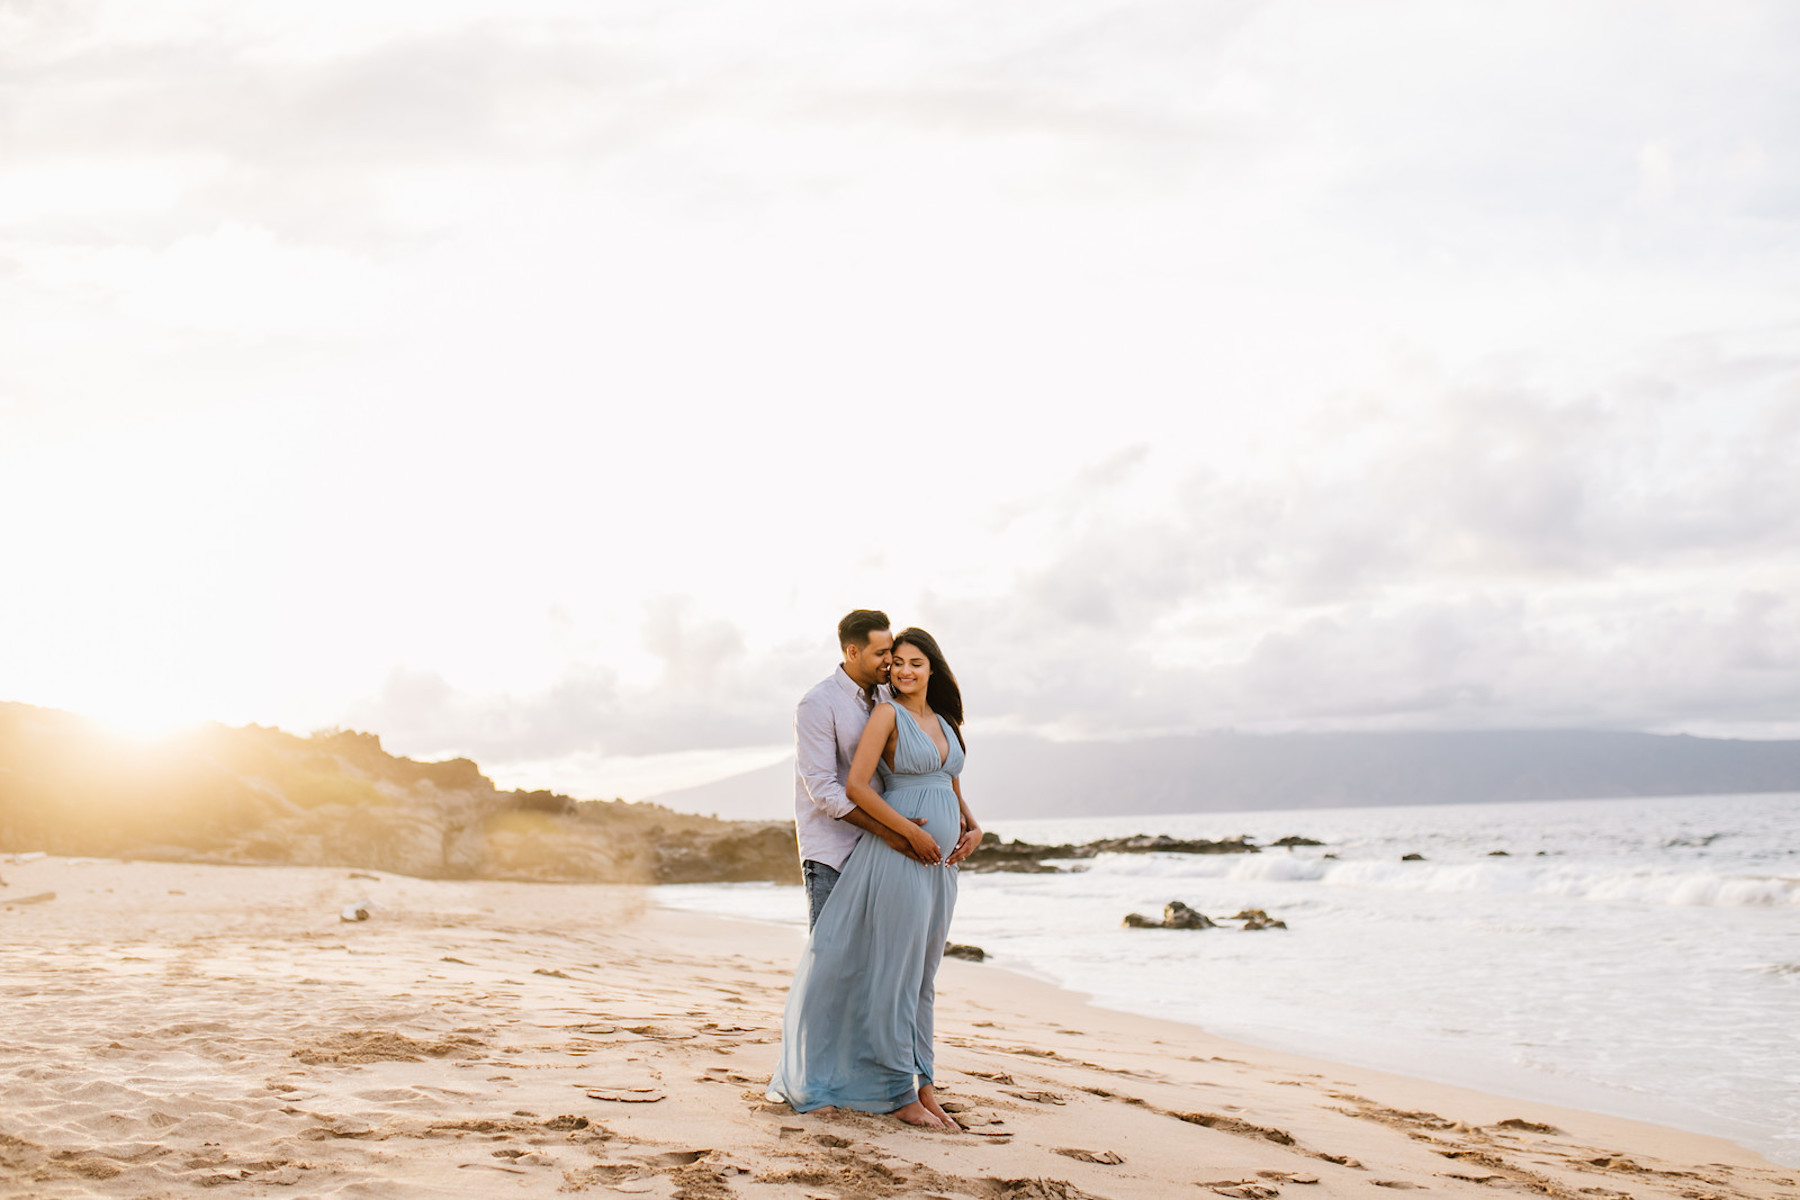 pregnant couple holding each other on the beach in Maui, Hawaii